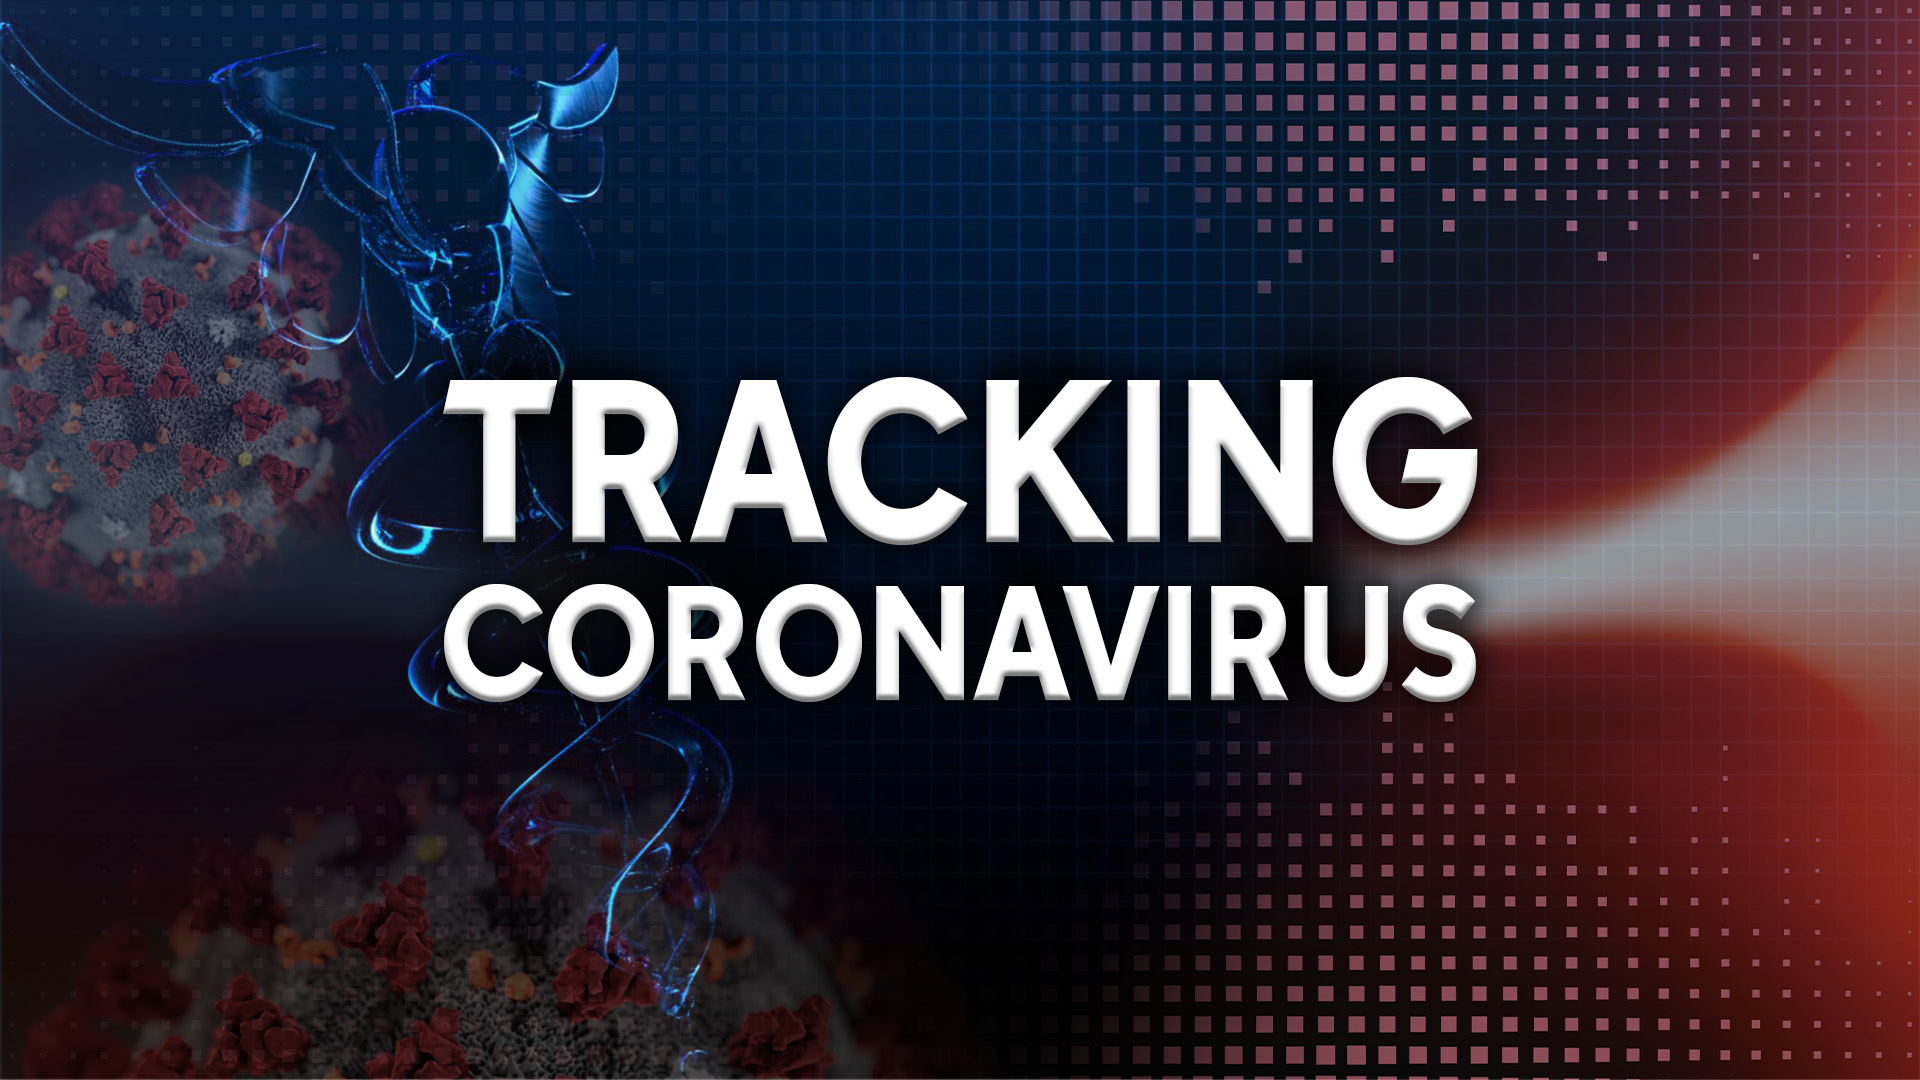 Easing Anxiety Over Coronavirus Concerns Wate 6 On Your Side